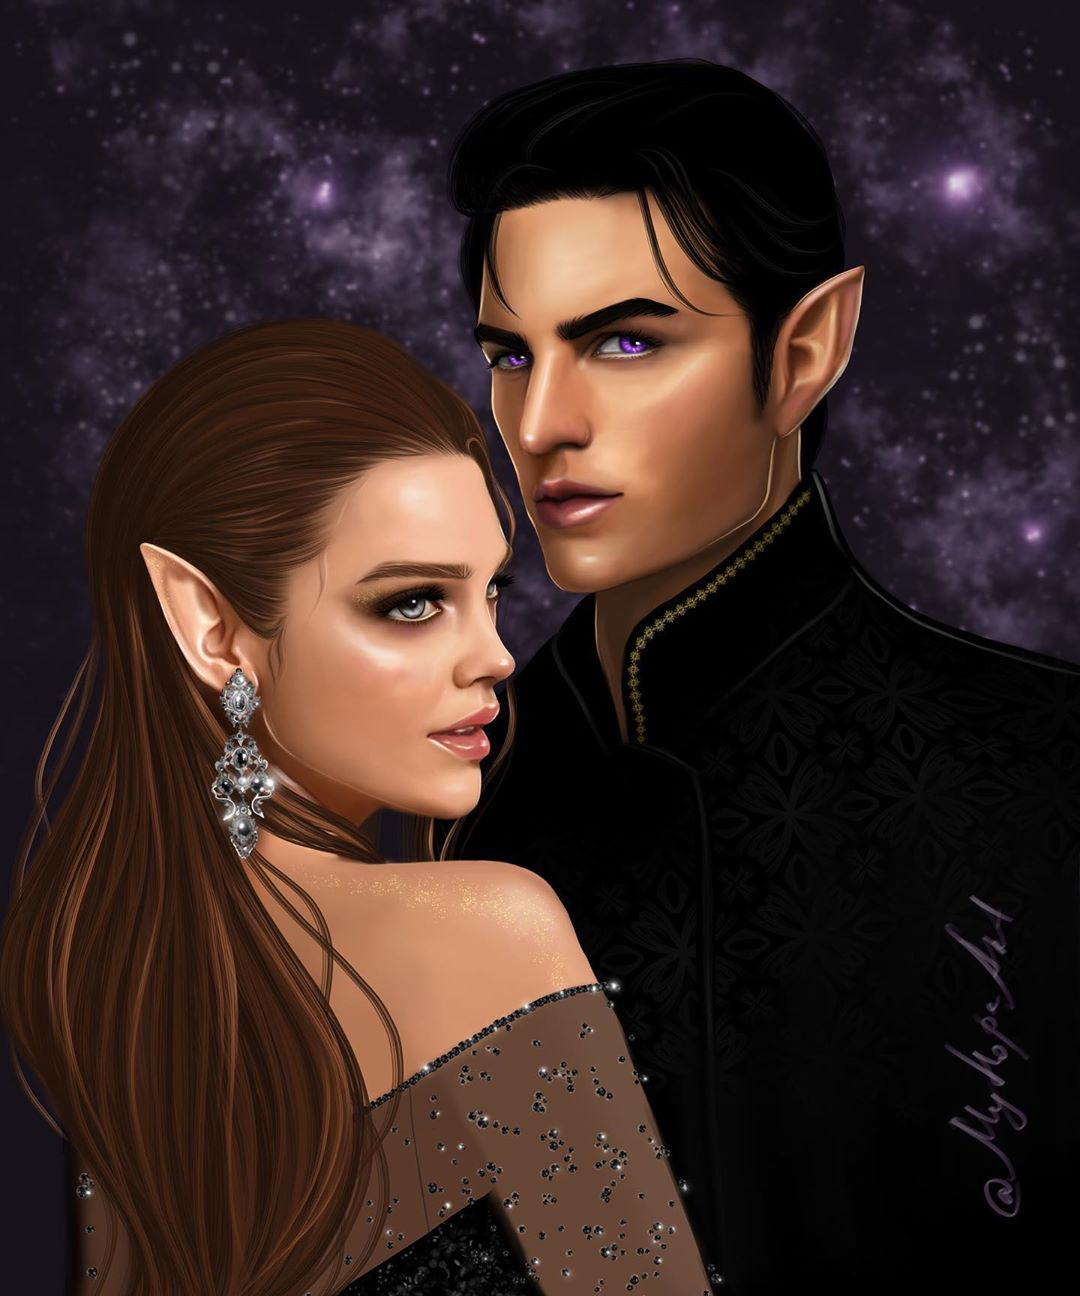 Nadia On Instagram Feyre And Rhysand From A Court Of Thorns And